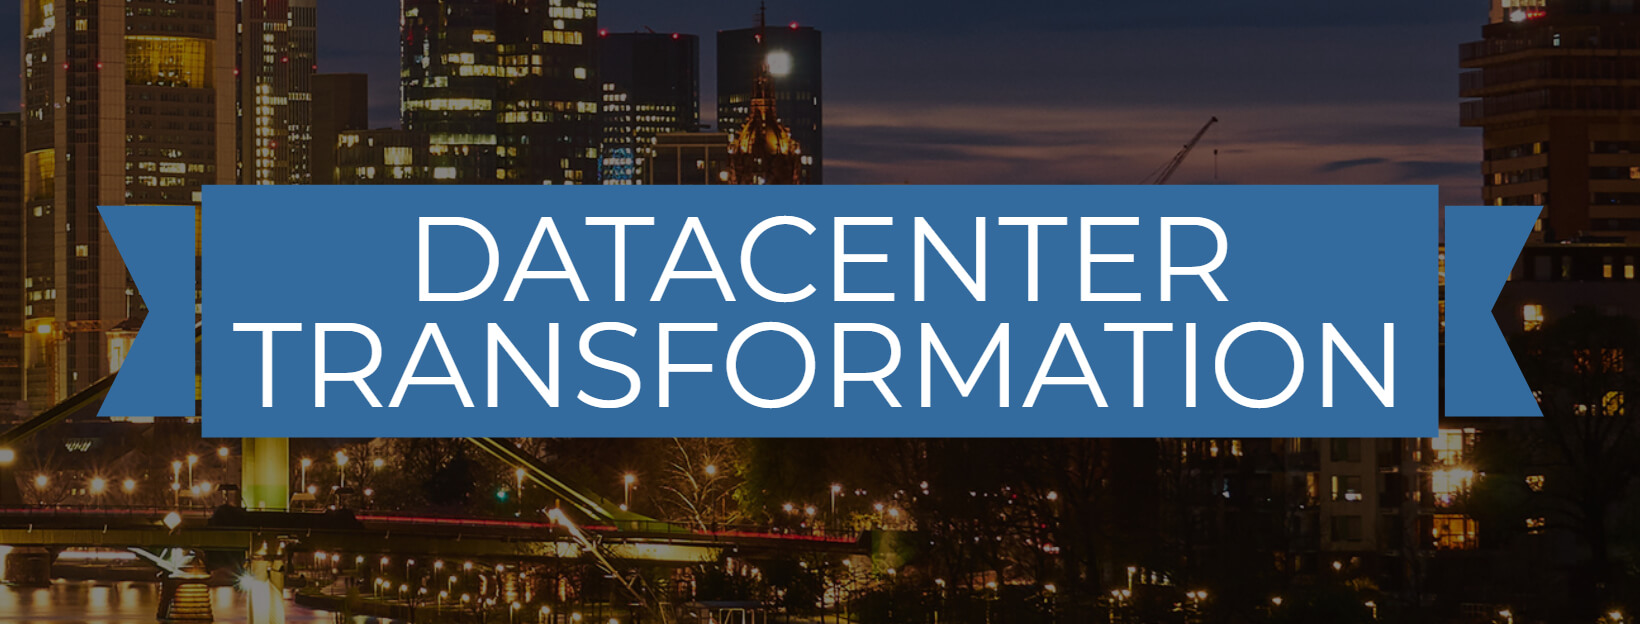 7 People You Need to See at Datacenter Transformation 2017